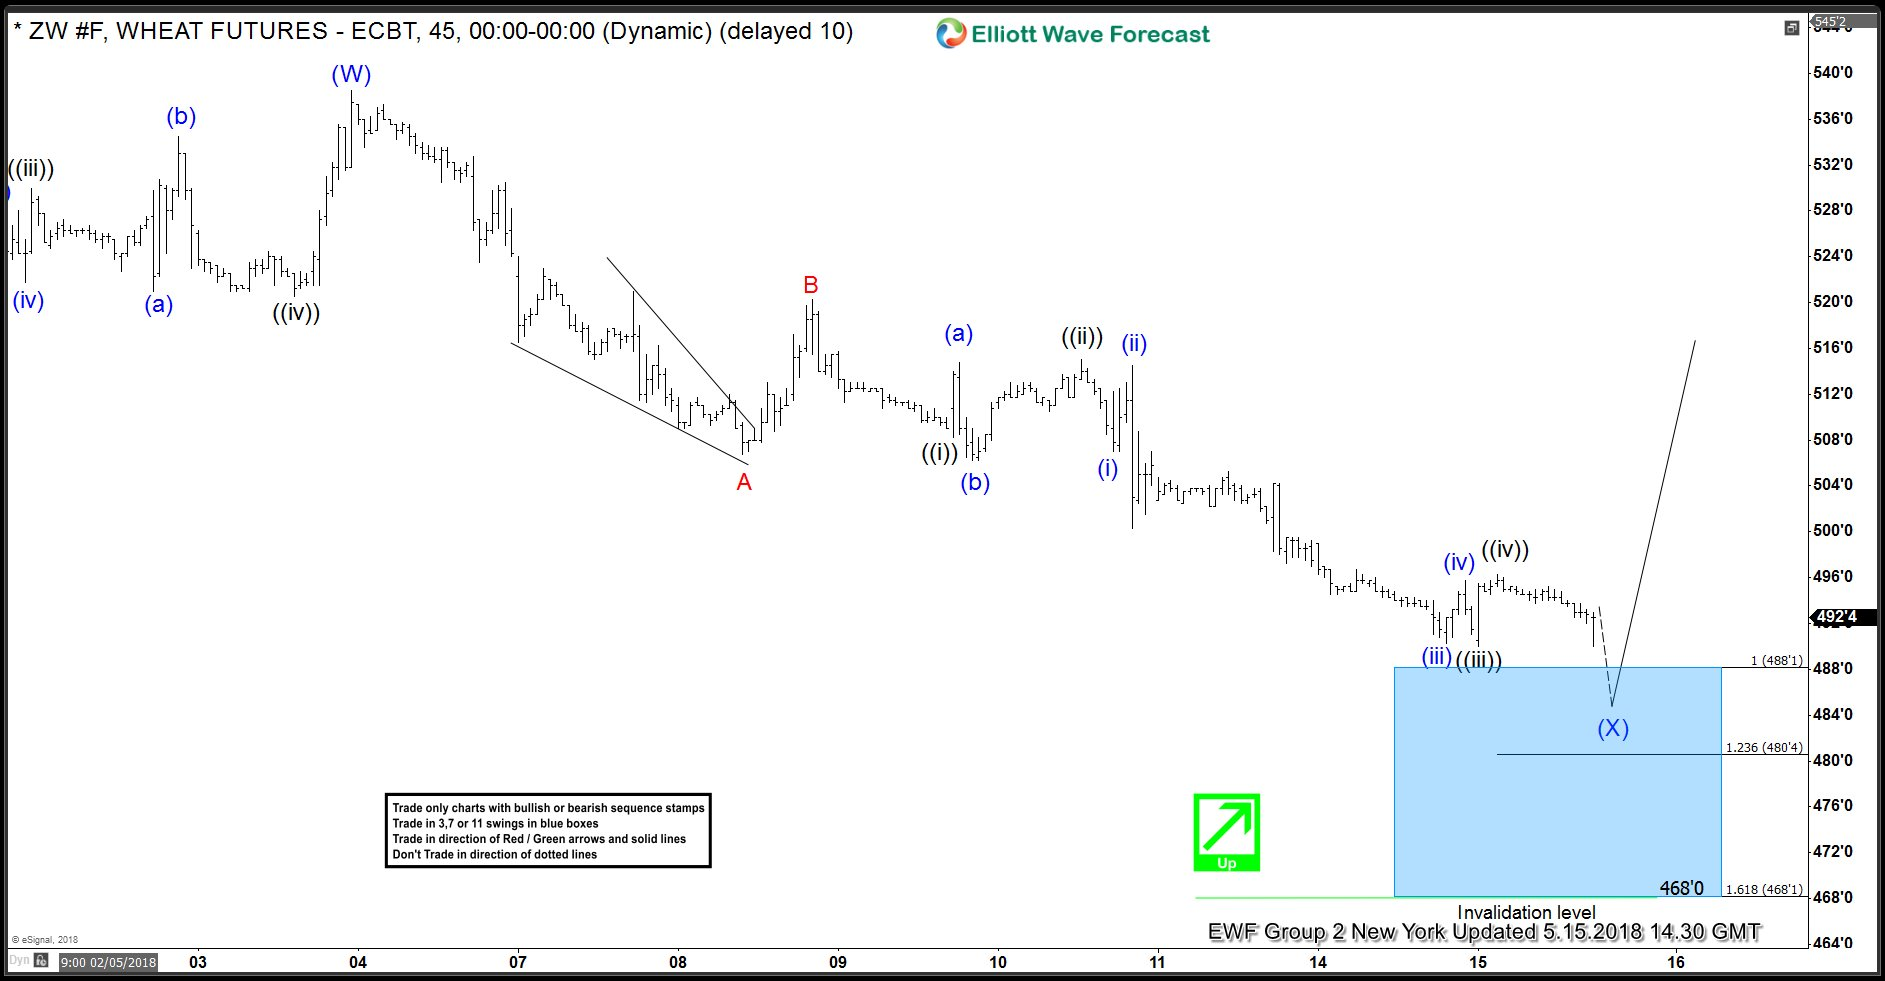 ZW_F Wheat Futures 15 May 1 Hour Elliott Wave Analysis